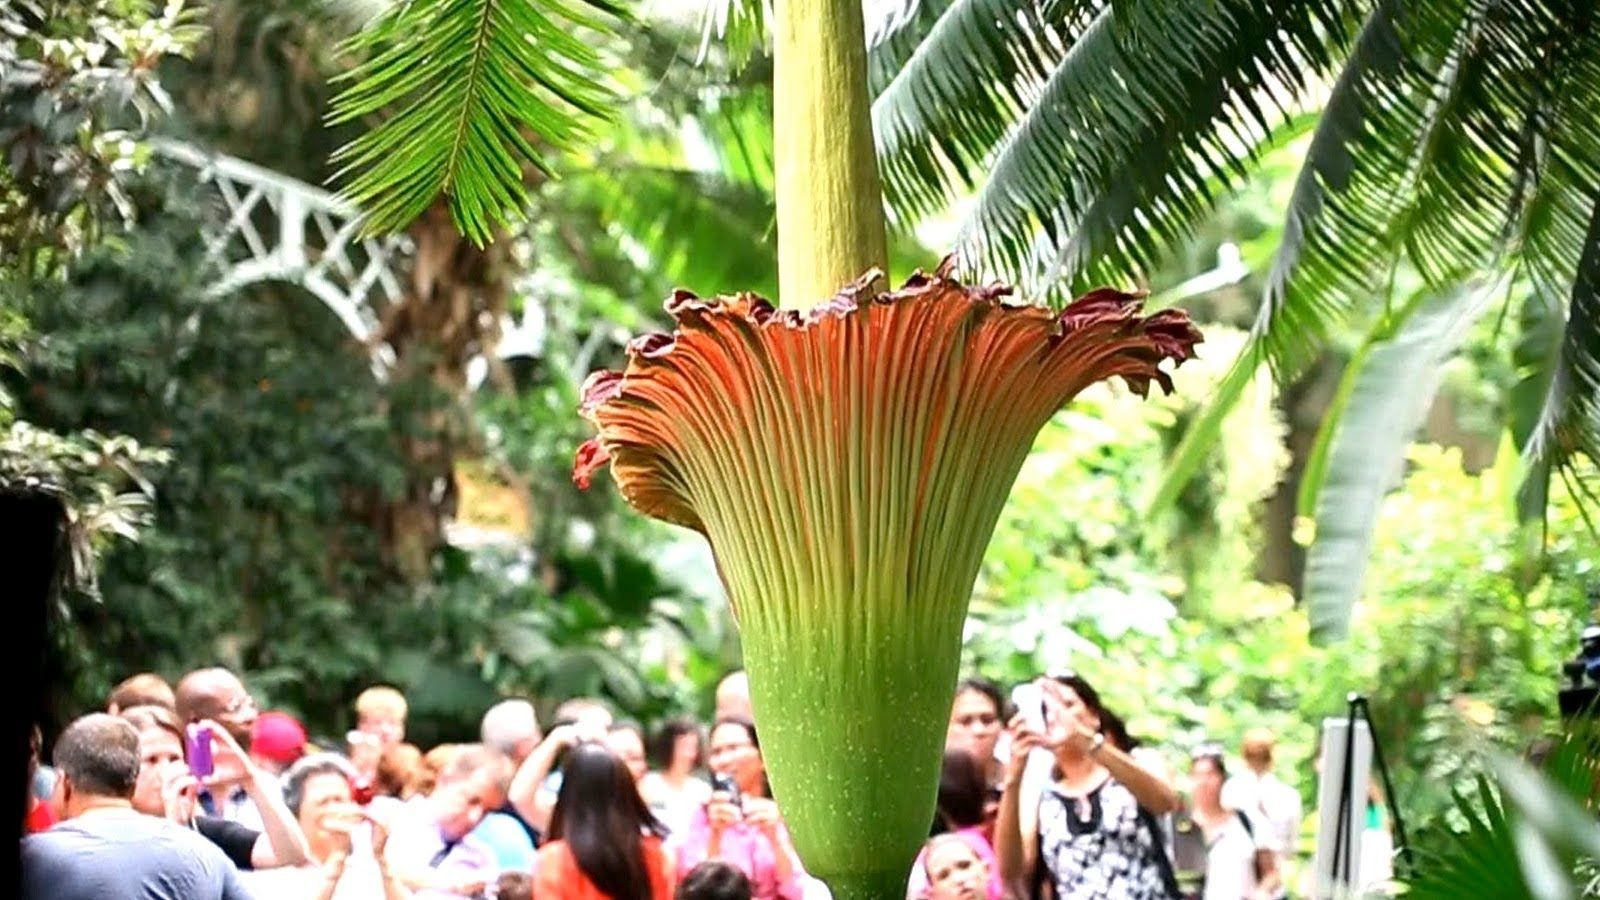 The Corpse Flower Behind The Stink Corpse Flower Corpse Flower Bloom Types Of Flowers